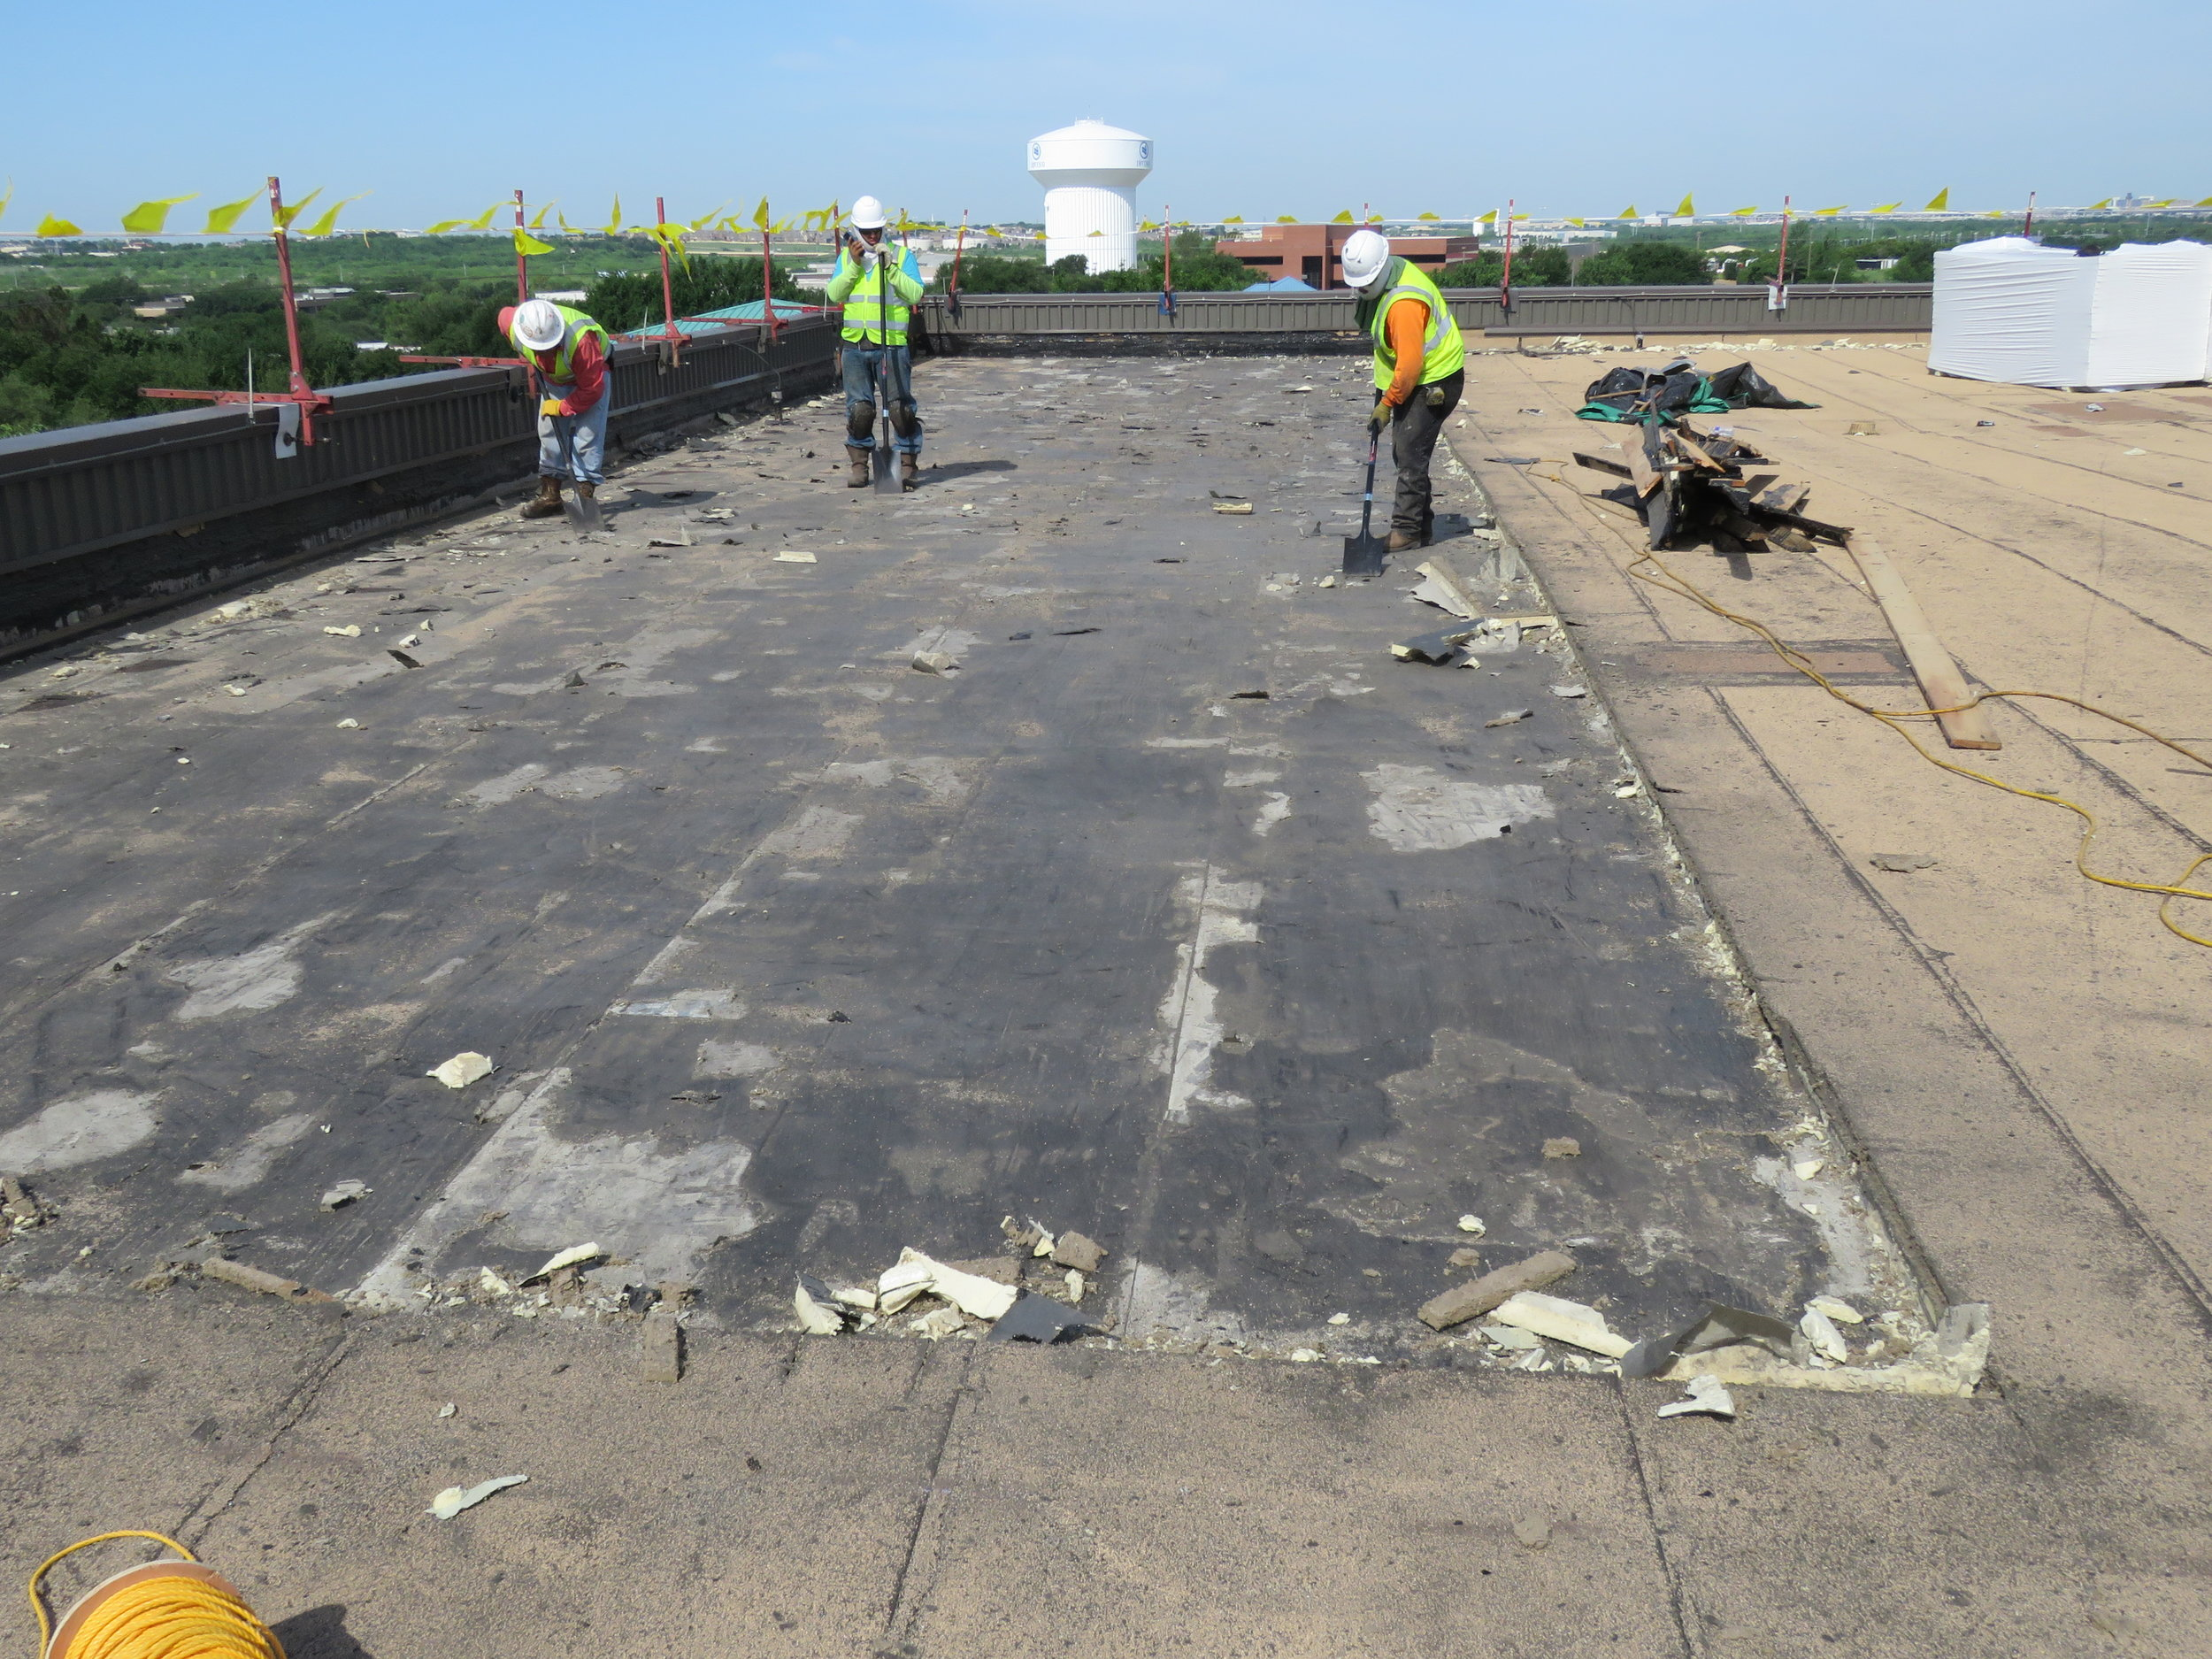 Removing as much of the old vapor barrier as they can.